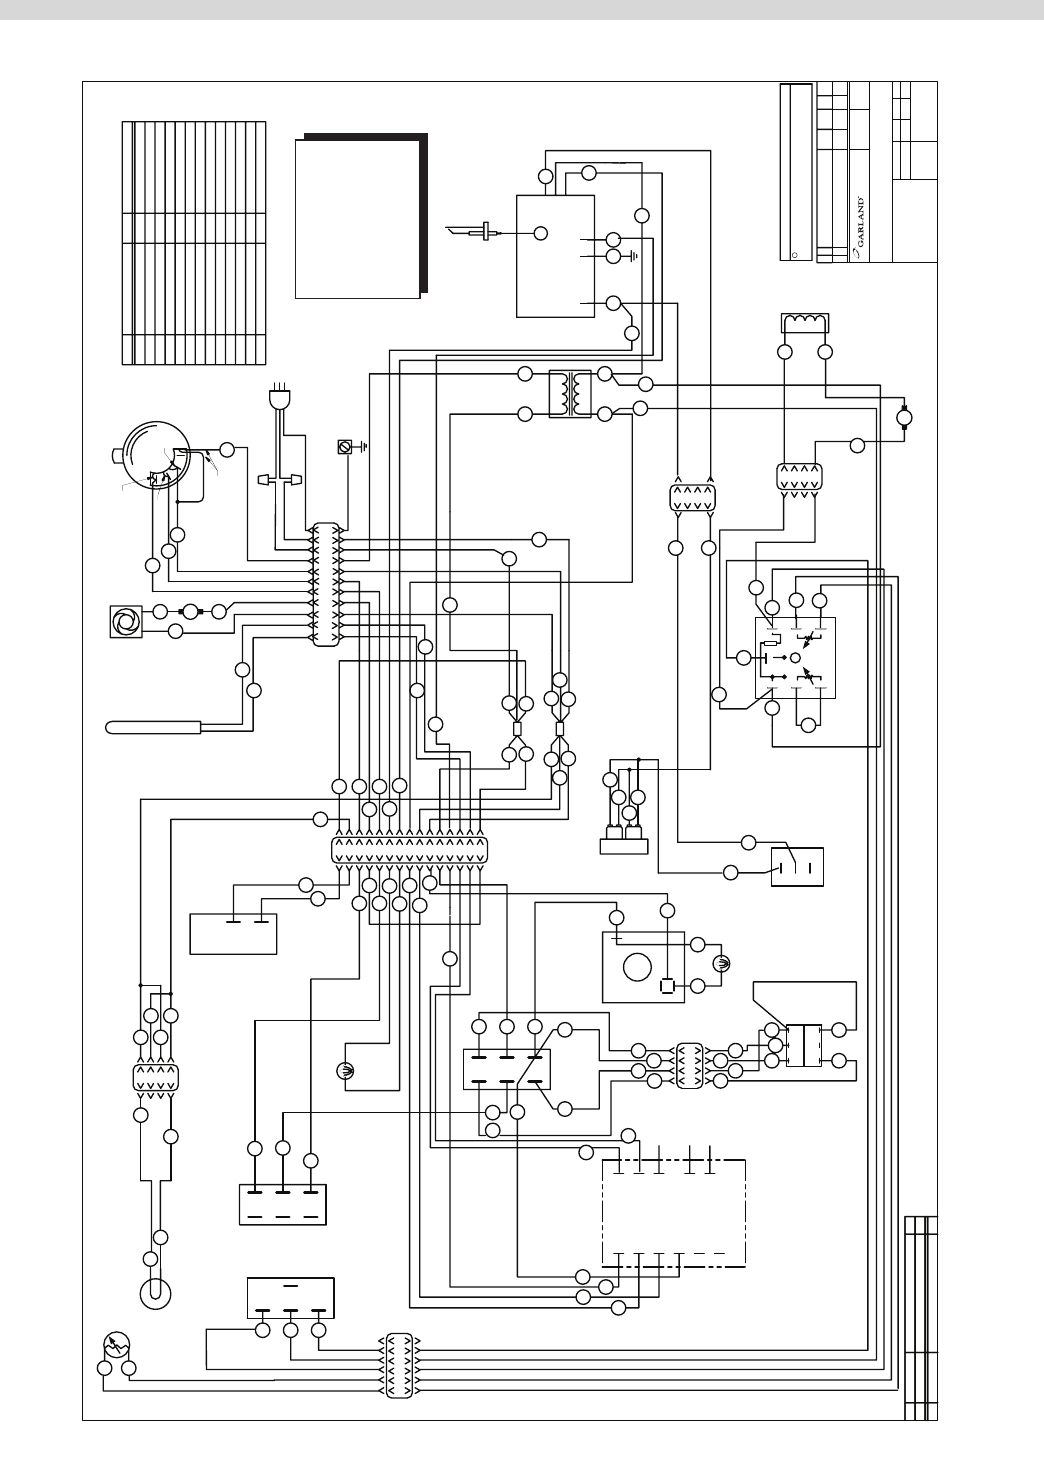 Page 55 Of Garland Oven Mp Gs User Guide Manualsonlinecom Peerless Industrial Mixer Wiring Diagram Part Mpsm07 03 24 08 Diagrams